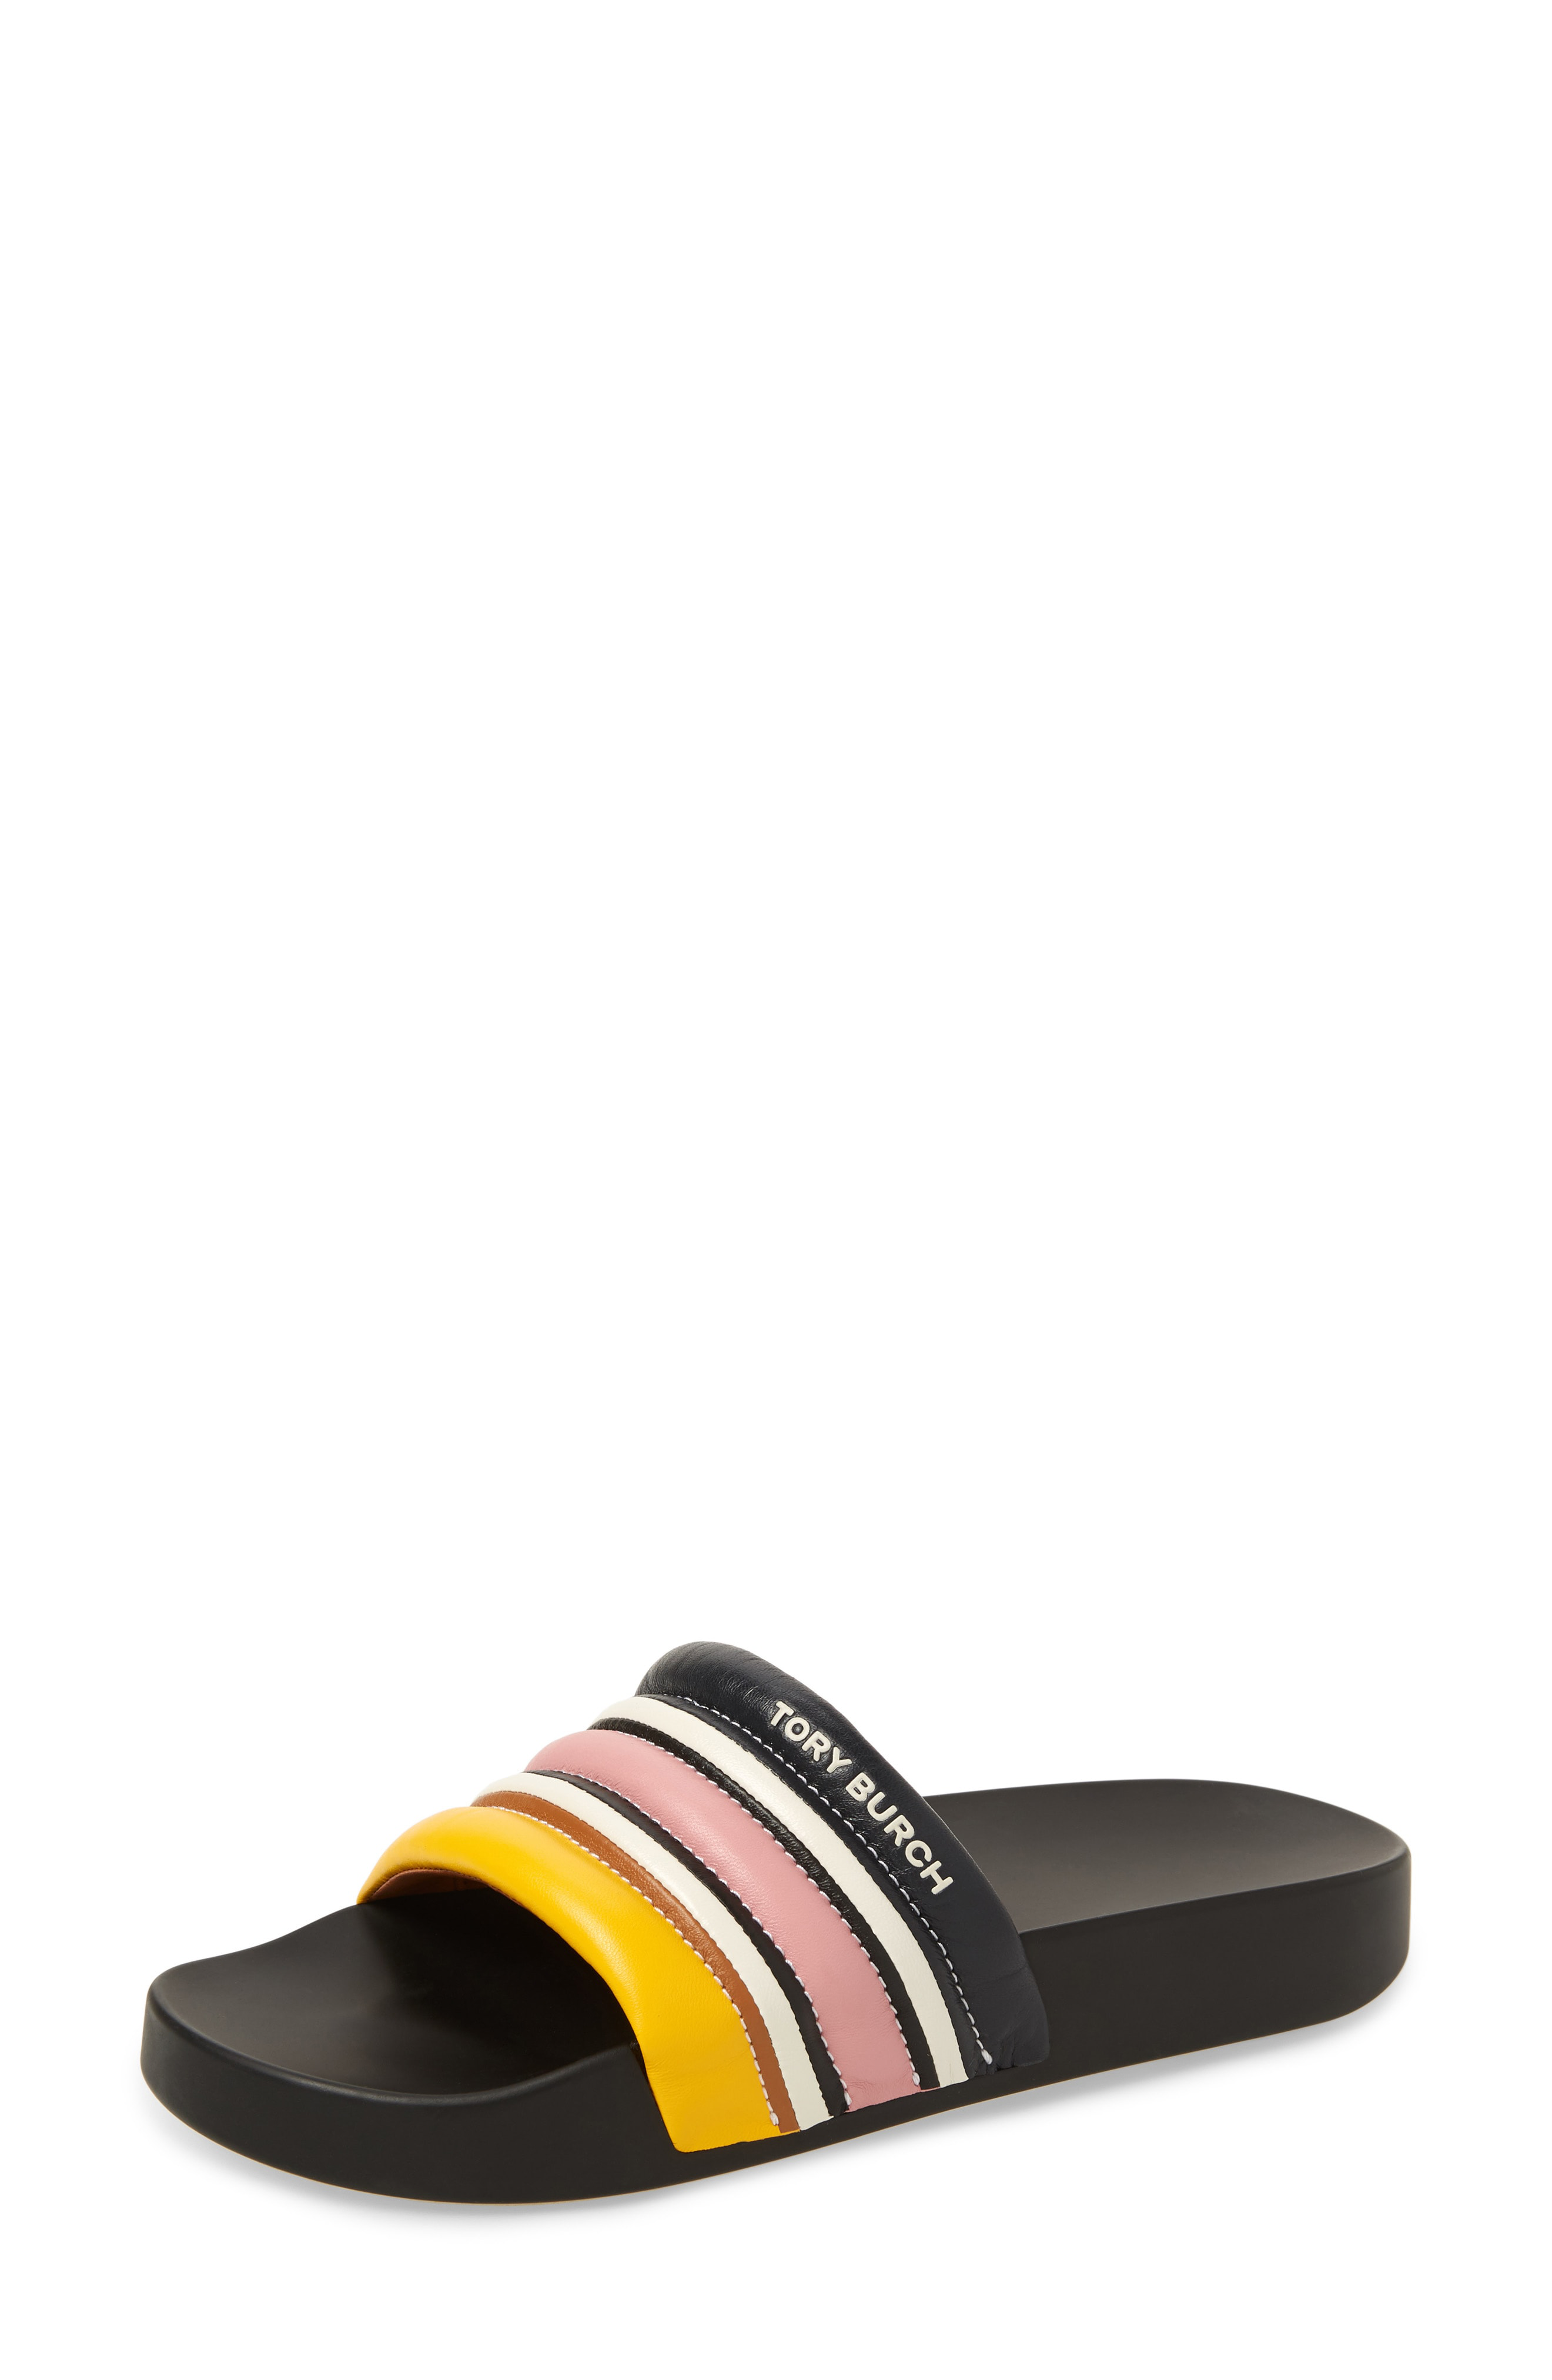 24417ae9074f Style Name  Tory Burch Colorblock Stripe Slide Sandal (Women). Style  Number  5798389. Available in stores.